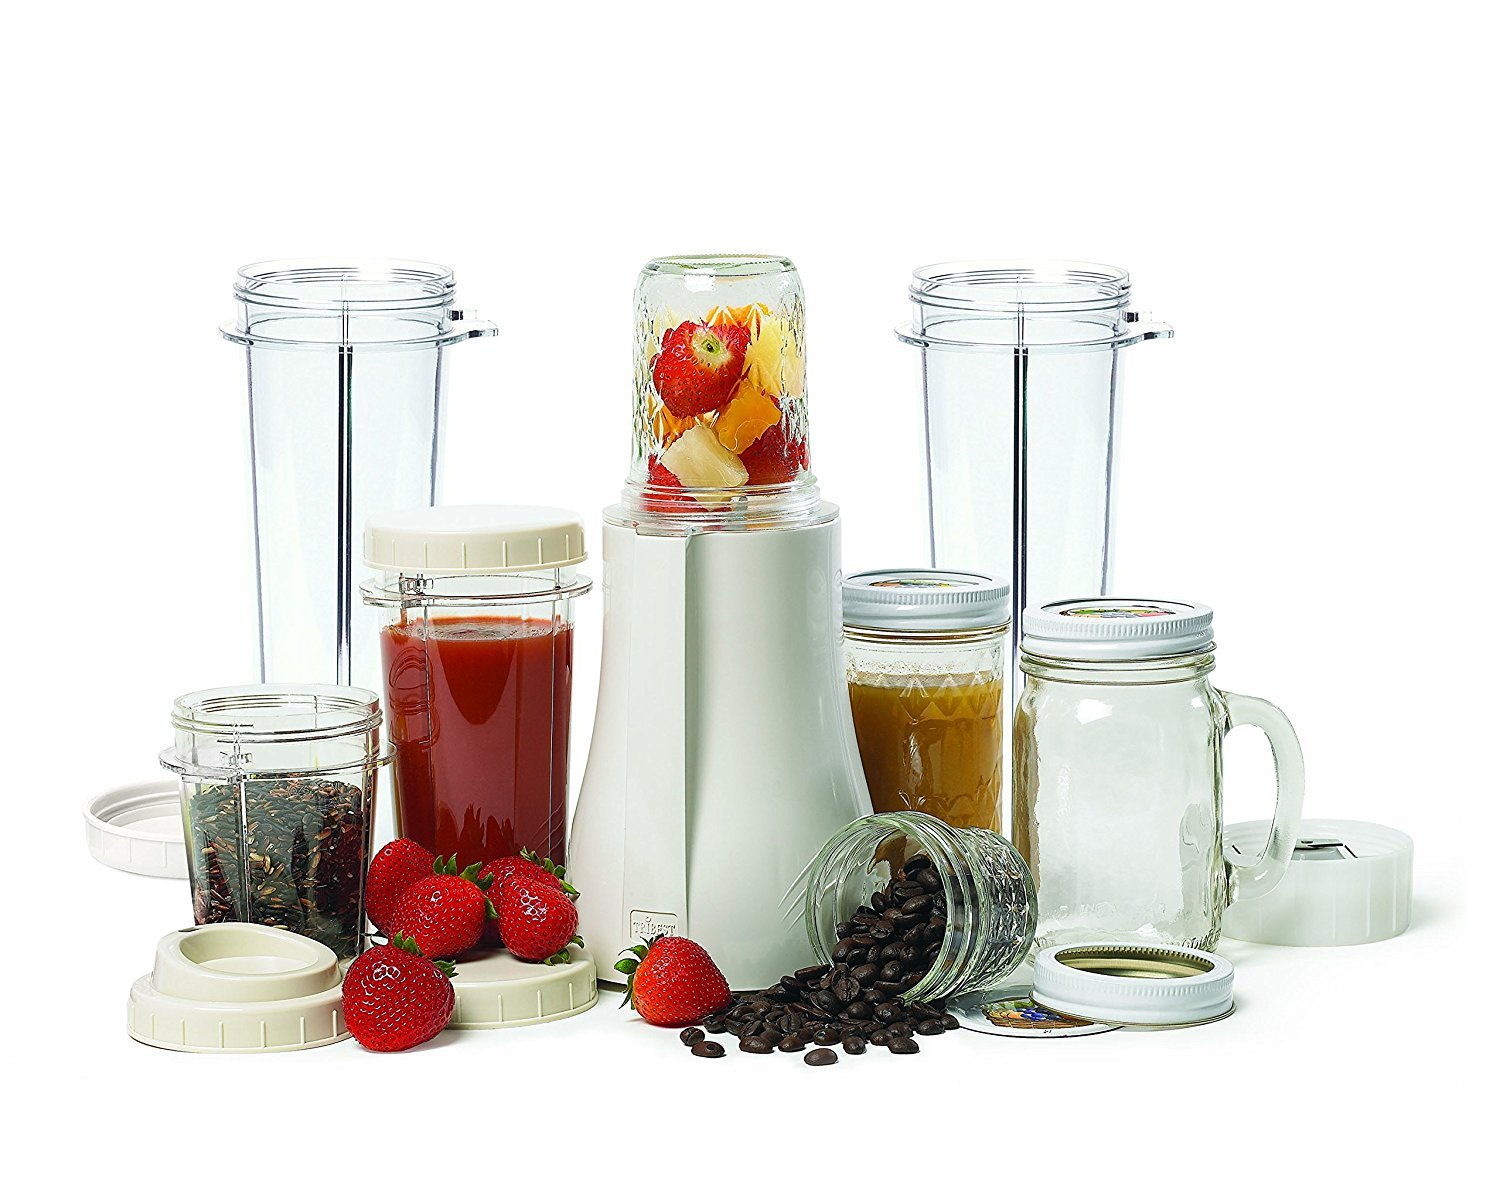 Tribest PB-350XL-A Mason Jar Personal Blender with X-Large Cups, White